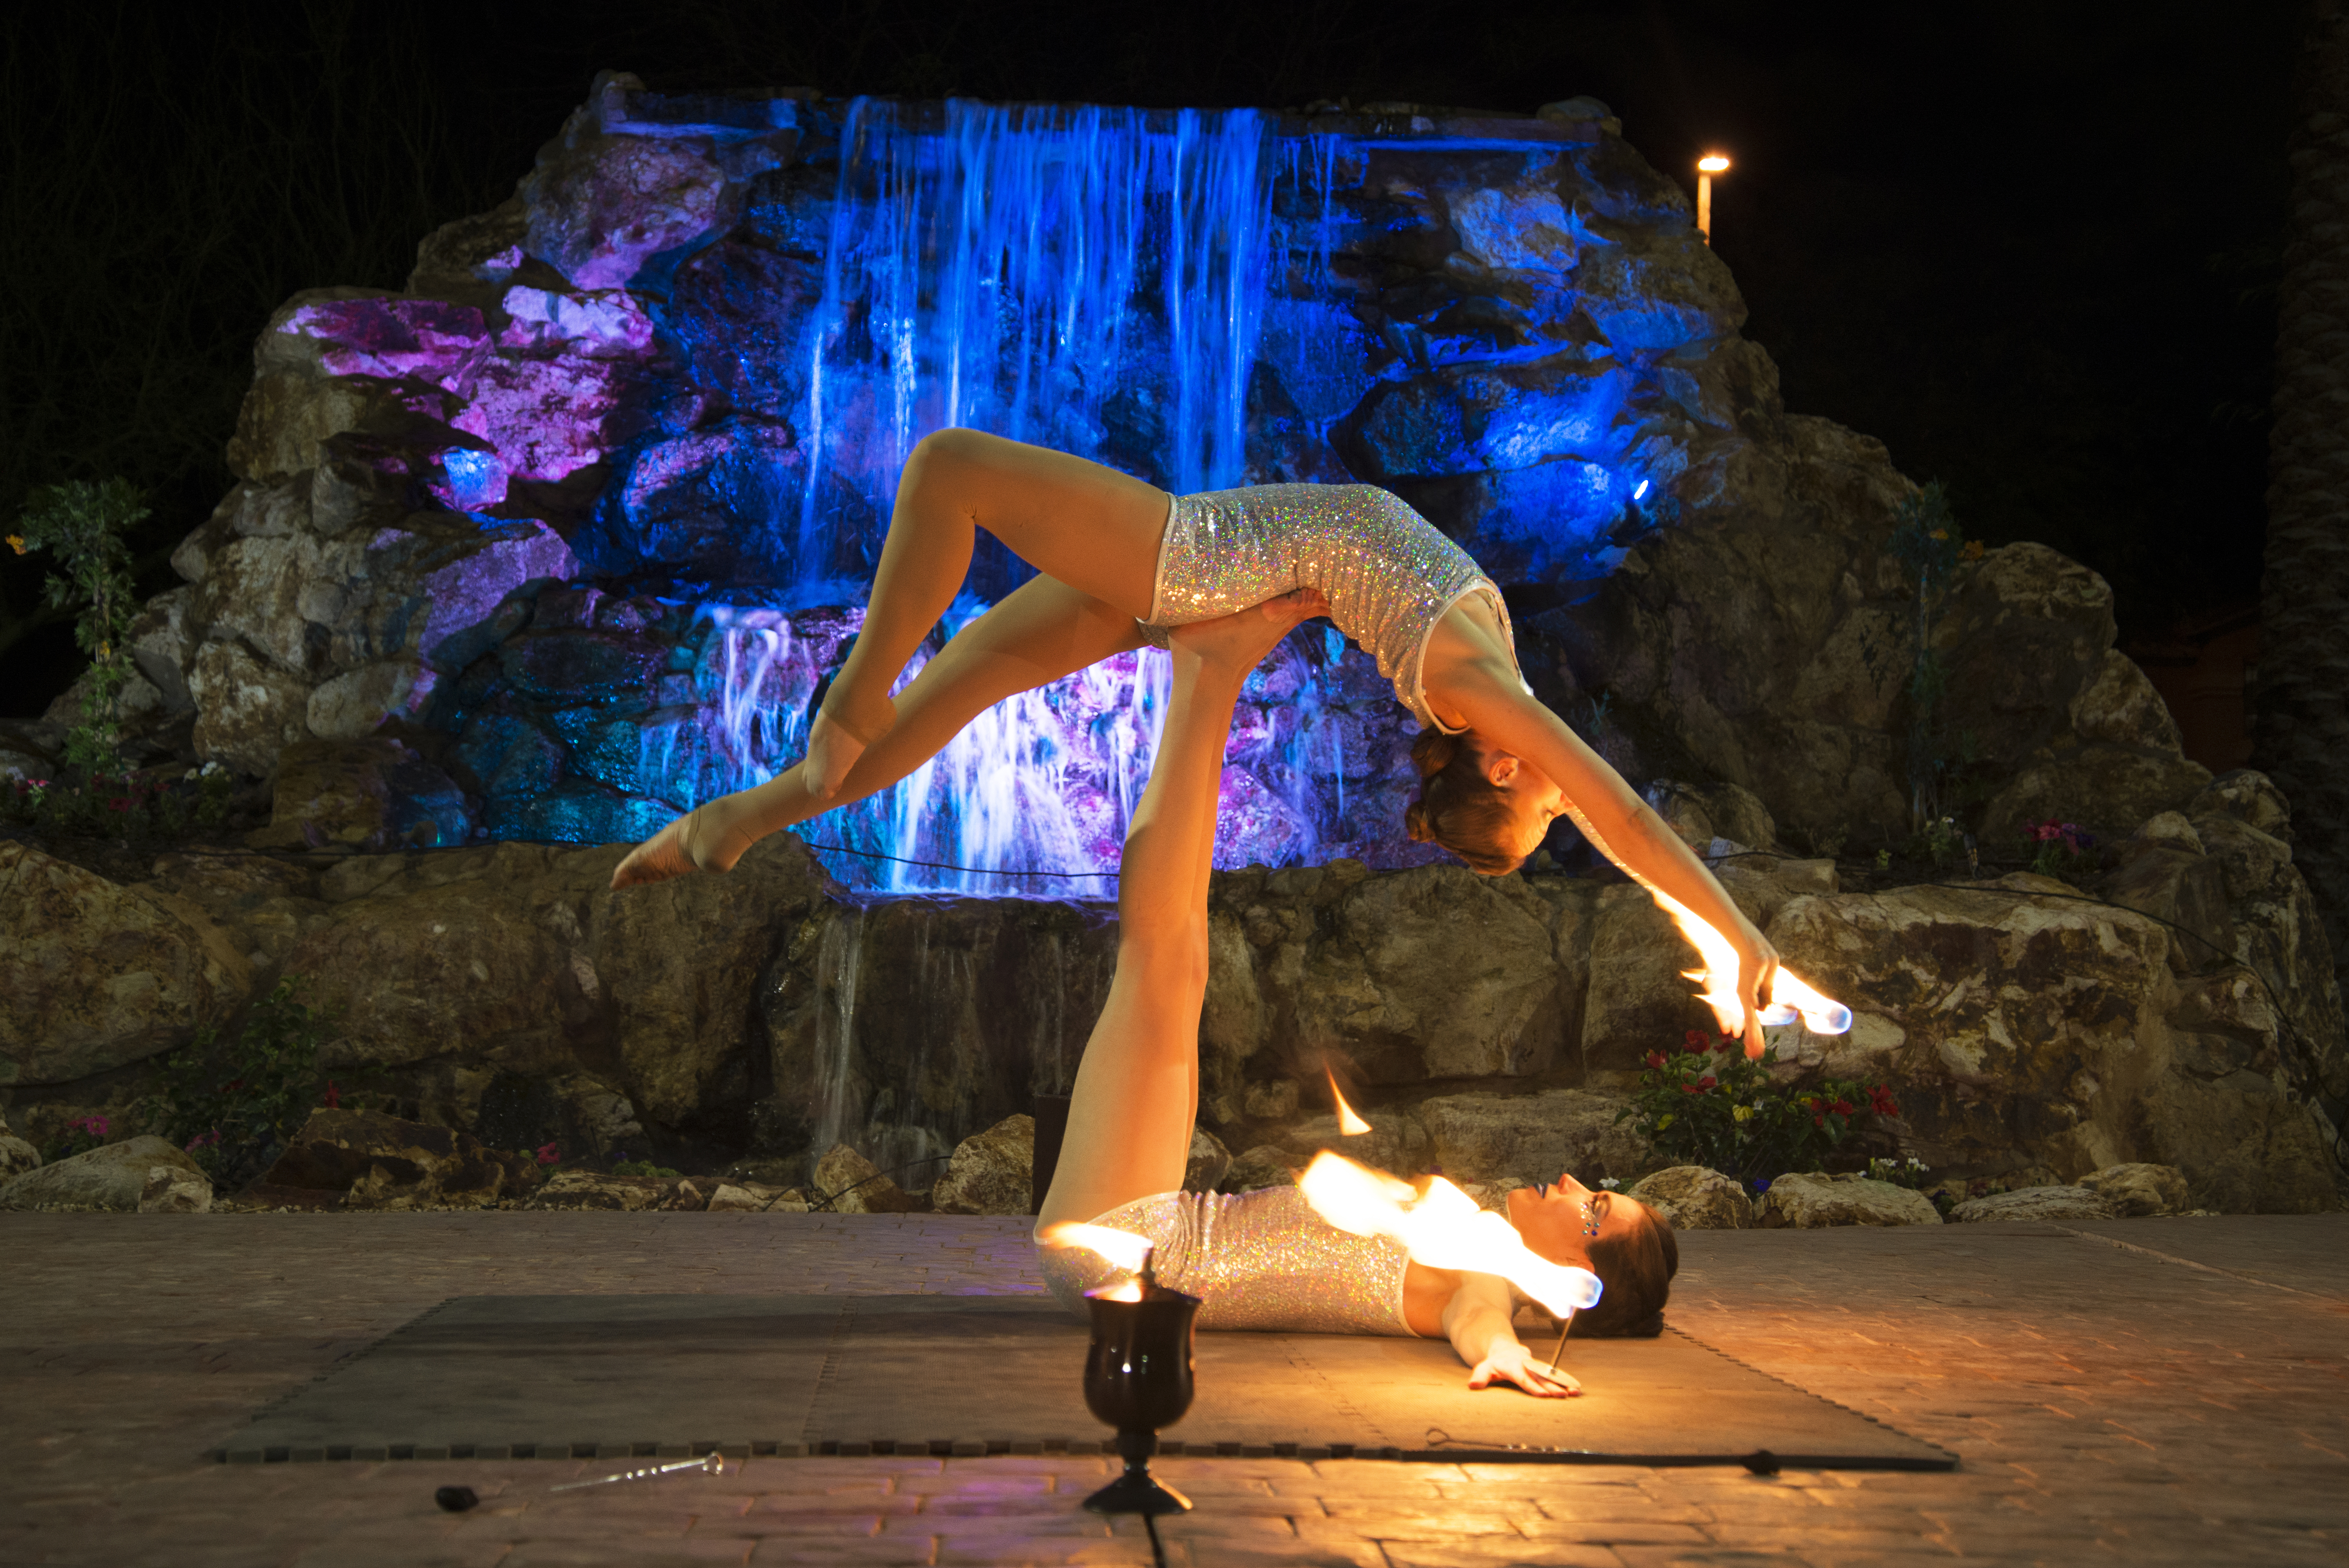 Jessica Packard - Fire Performer based in Phoenix, AZ